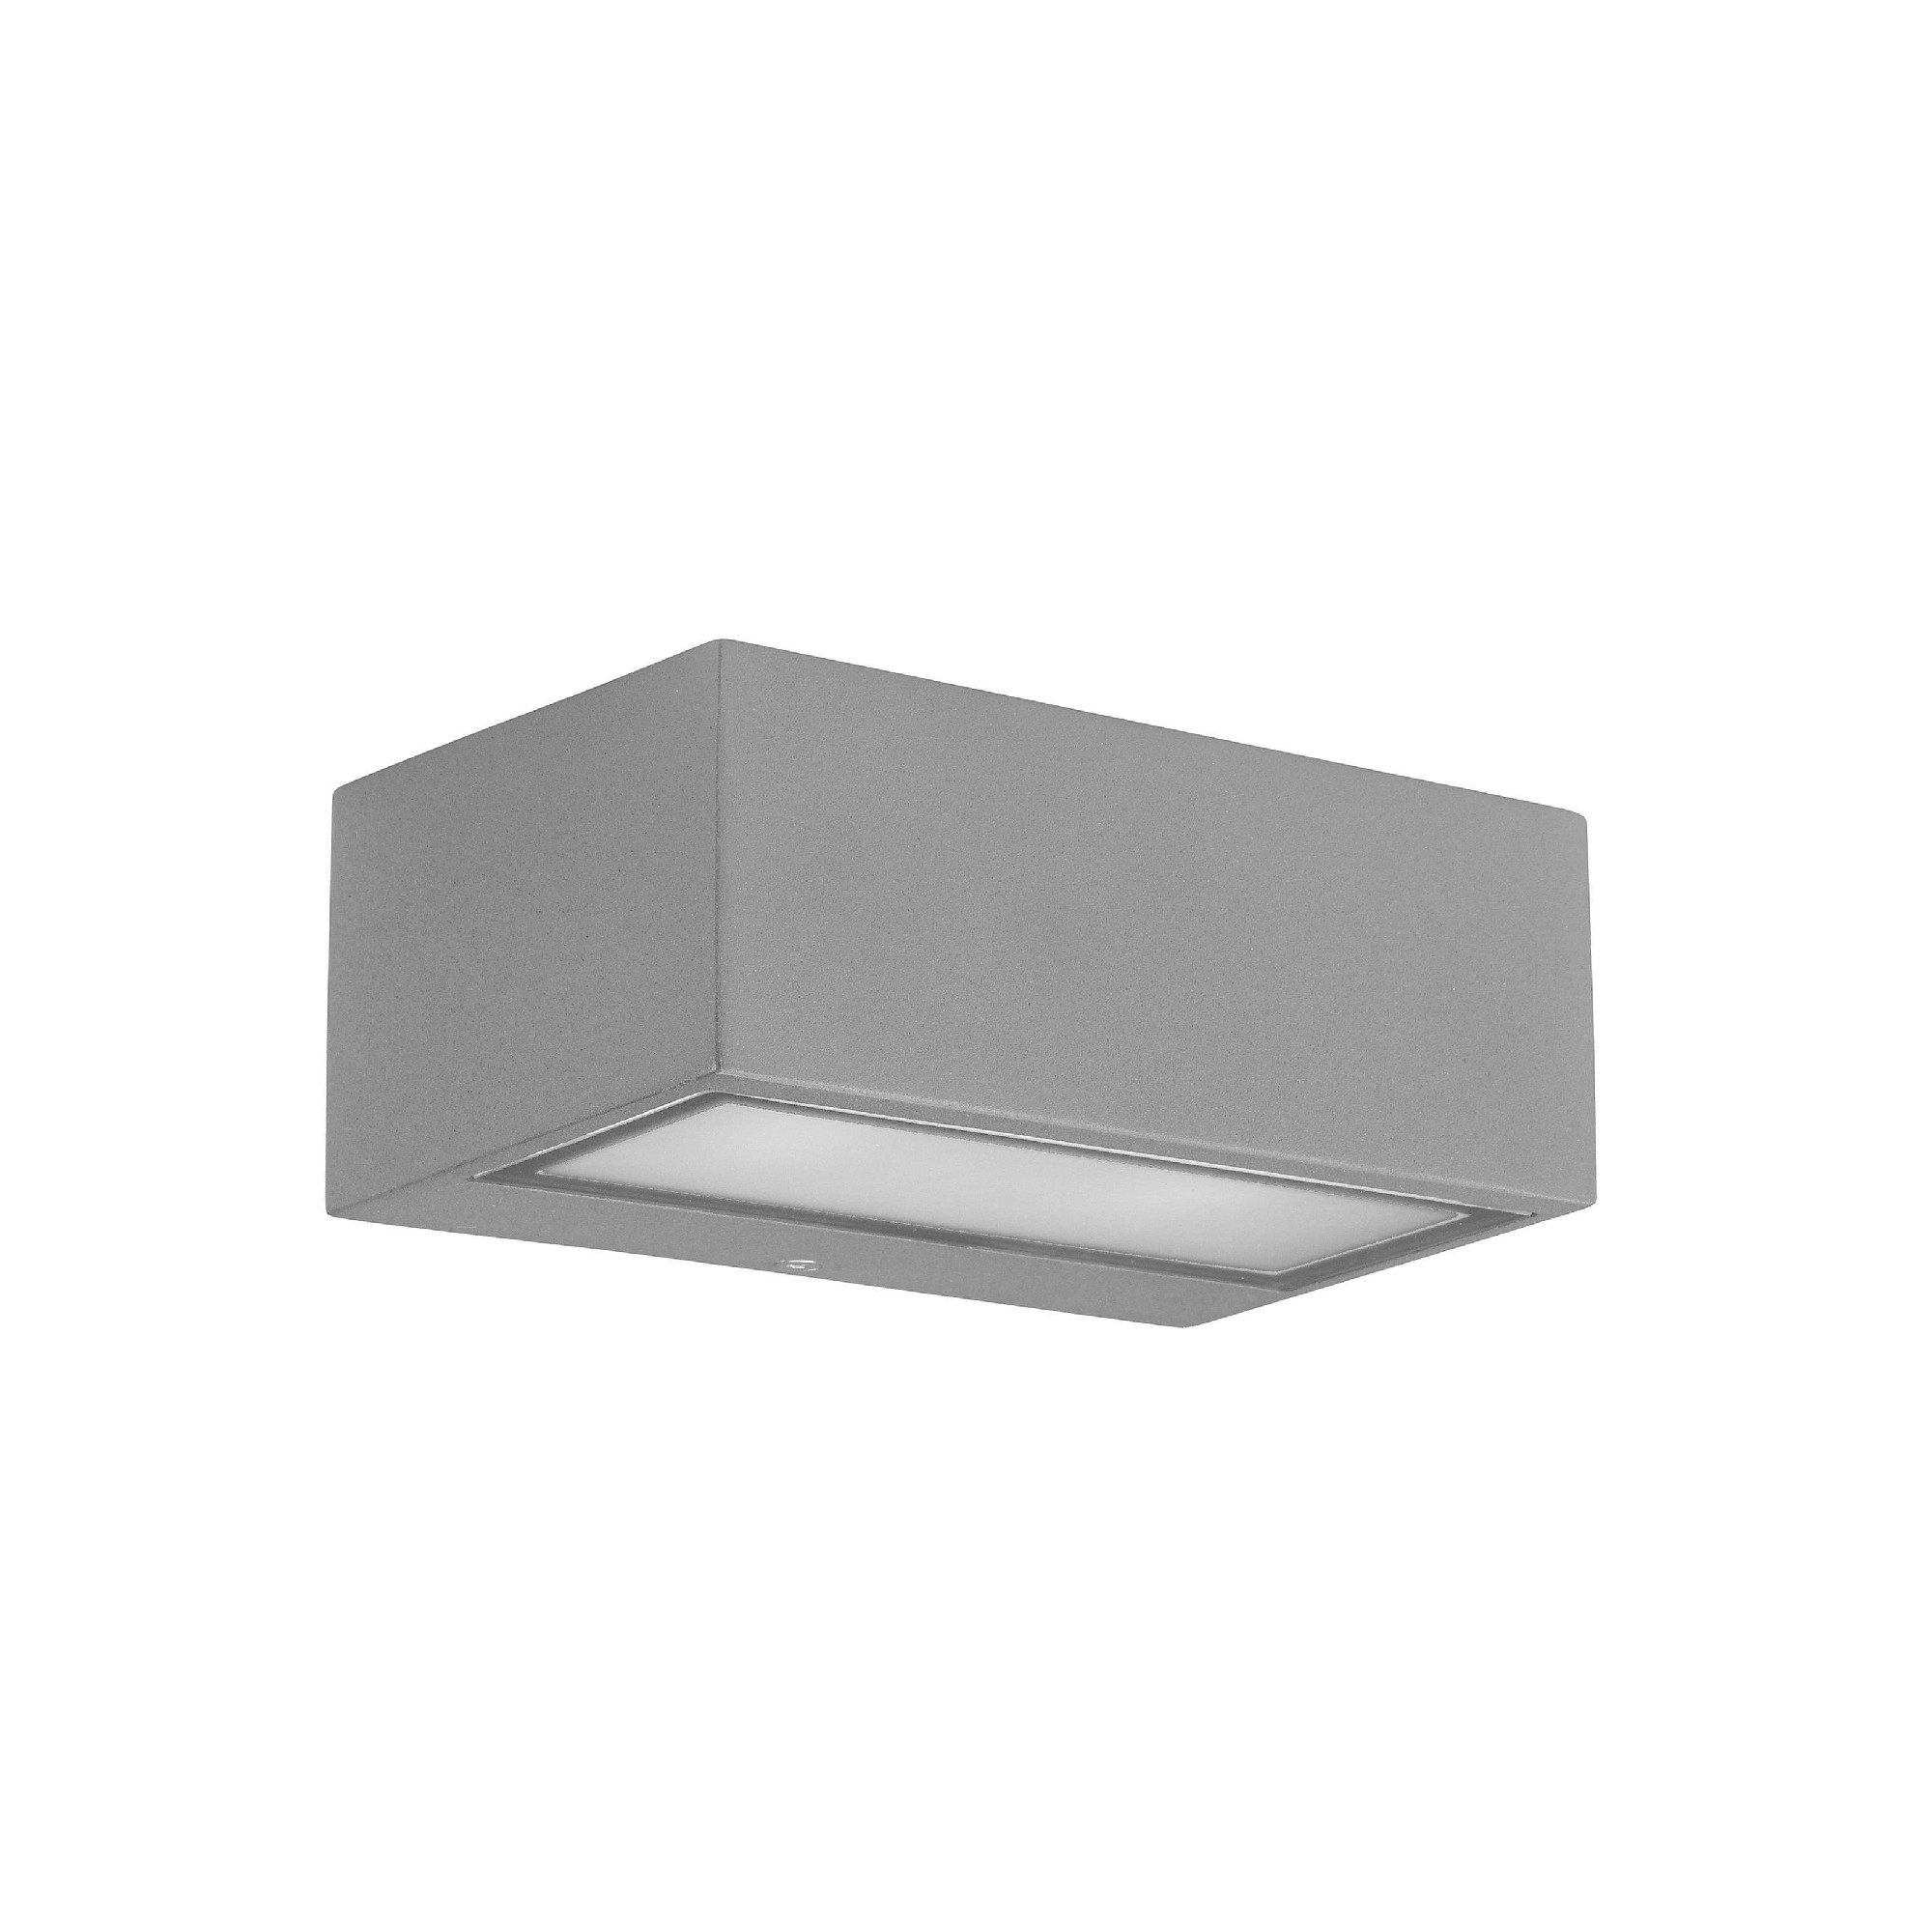 Leds C4 OUTDOOR 05 9177 34 B8V1 Ventilatoren